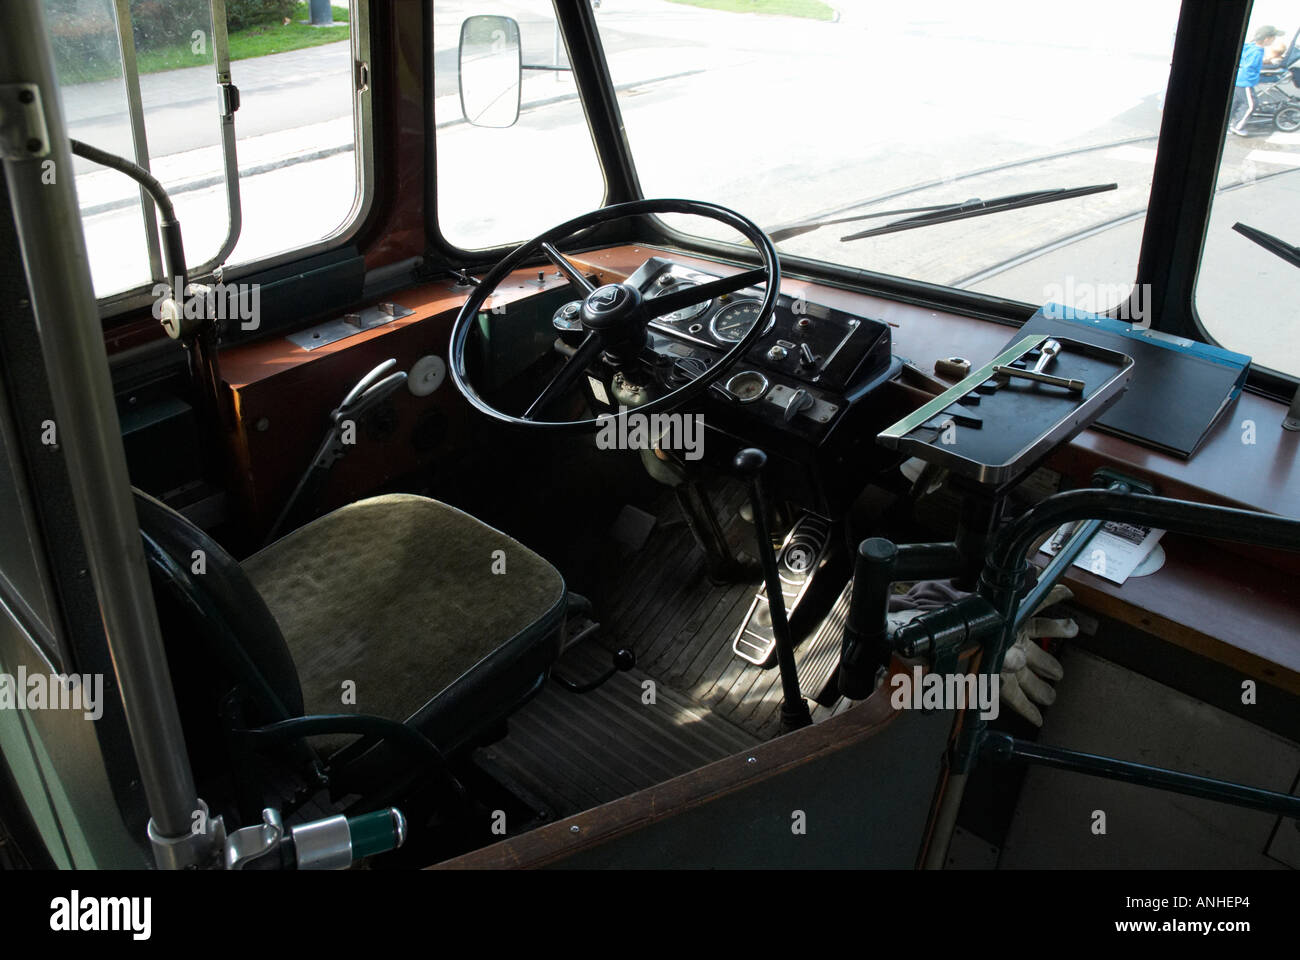 Drivers seat in  diesel bus MSS nbr 50 from 1957 made by Volvo - Stock Image